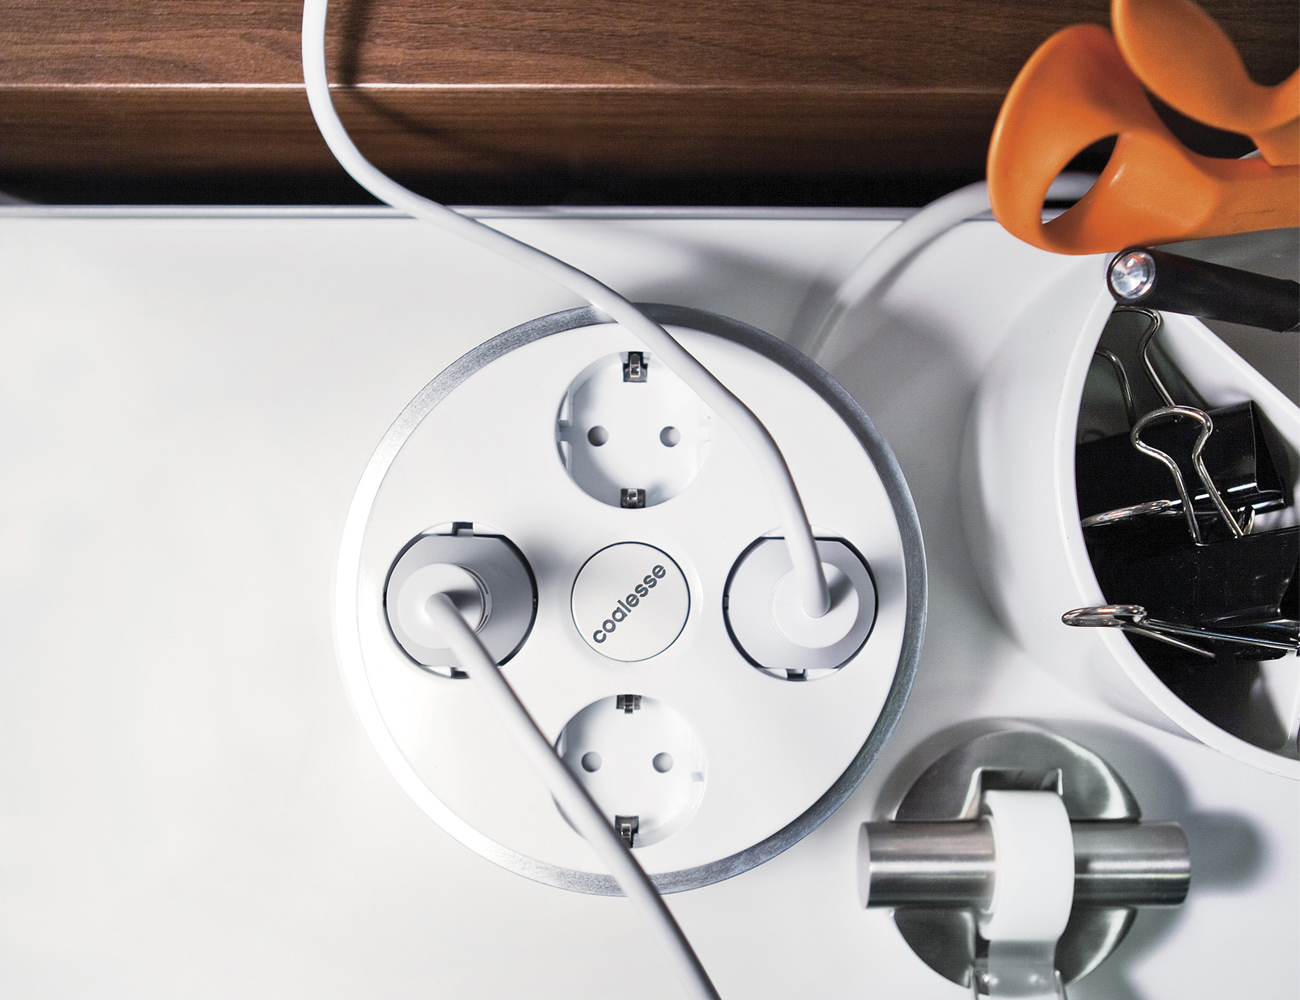 PowerPod by Coalesse – Convenient Access to Six Power Outlets